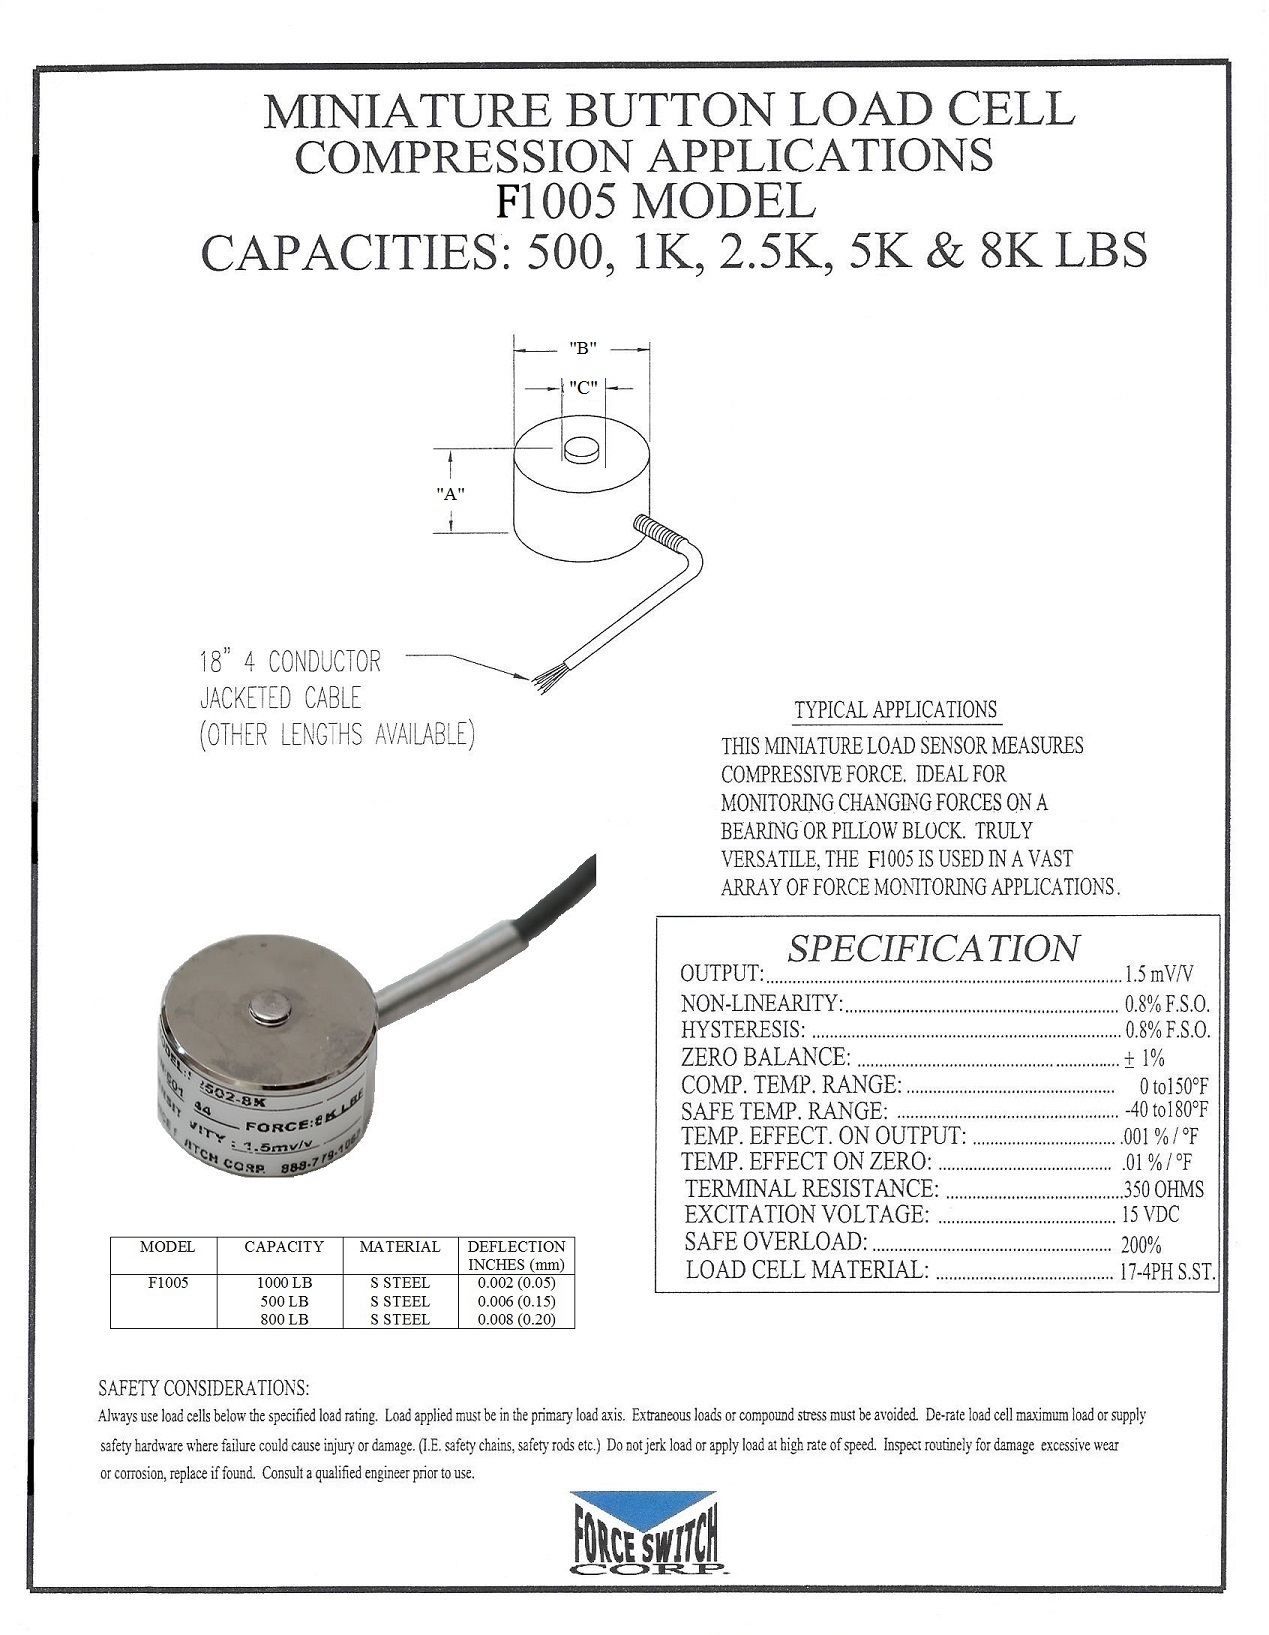 Product And Services Force Switch 4 Wire Load Cell Wiring The F1005 Model Is A Miniature Sensor That Measures Compressive It Ideal For Monitoring Changing Forces On Bearing Or Pillow Block